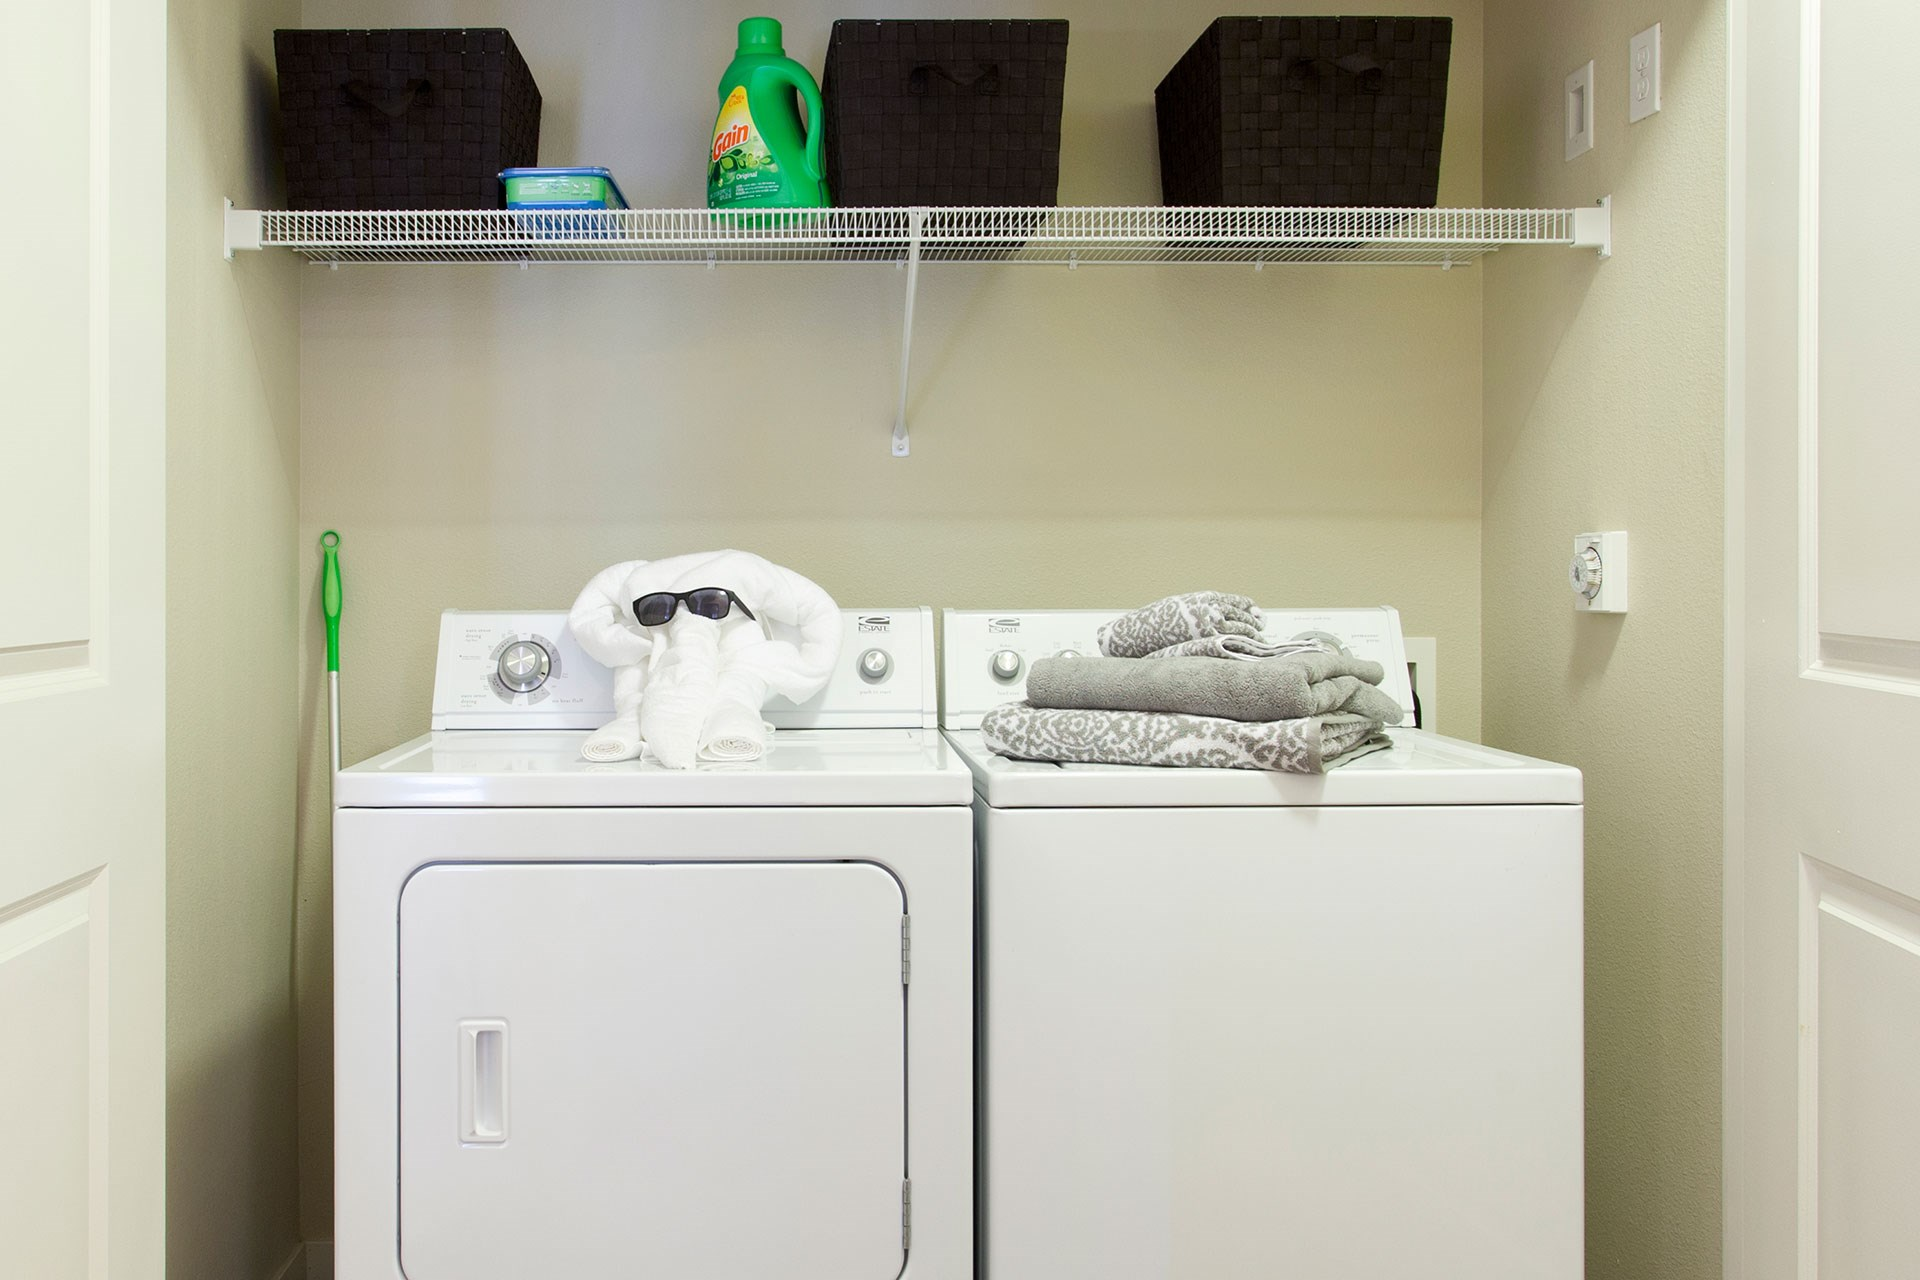 Pine Valley Ranch Apartments Washer and Dryers